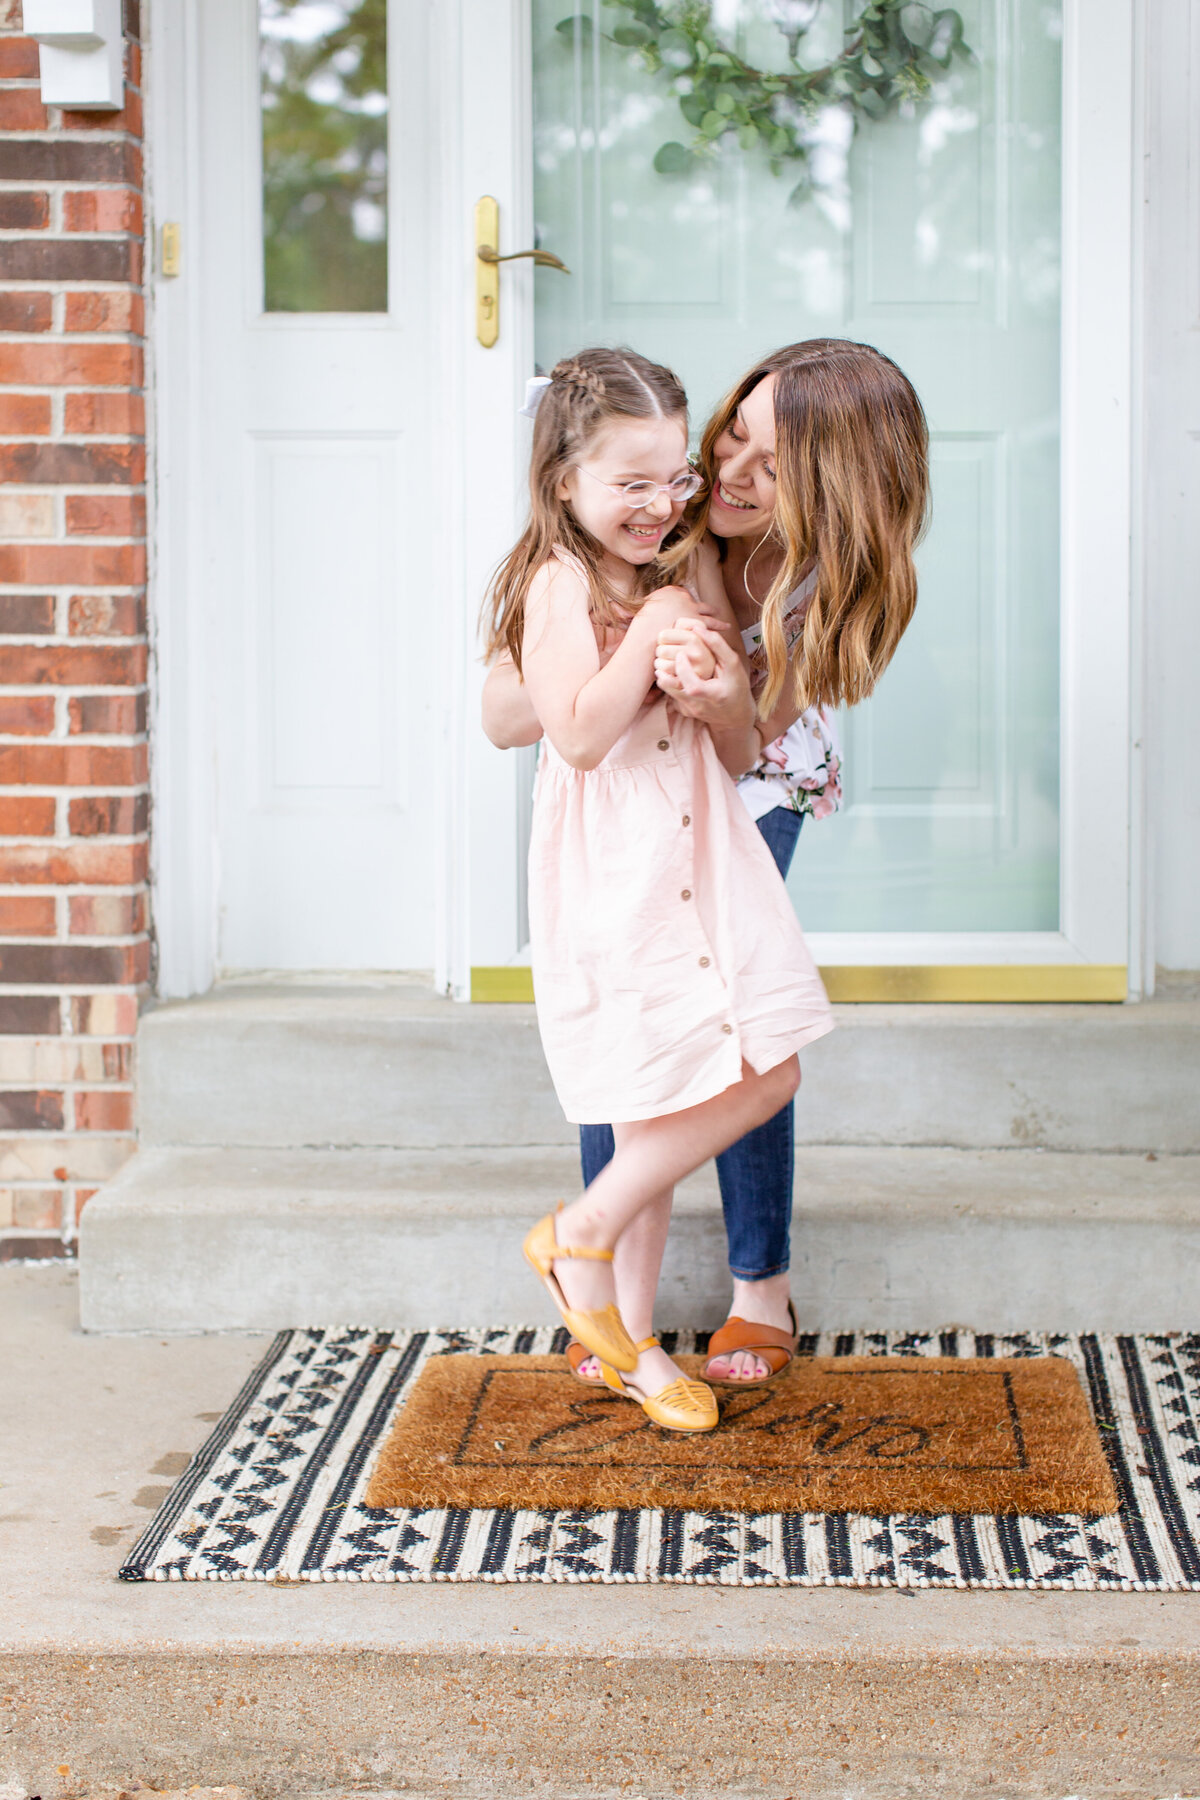 Spring Lifestyle Family  Session mom tickling daughter on front porch  in St. Louis by Amy Britton Photography Photographer  in St. Louis